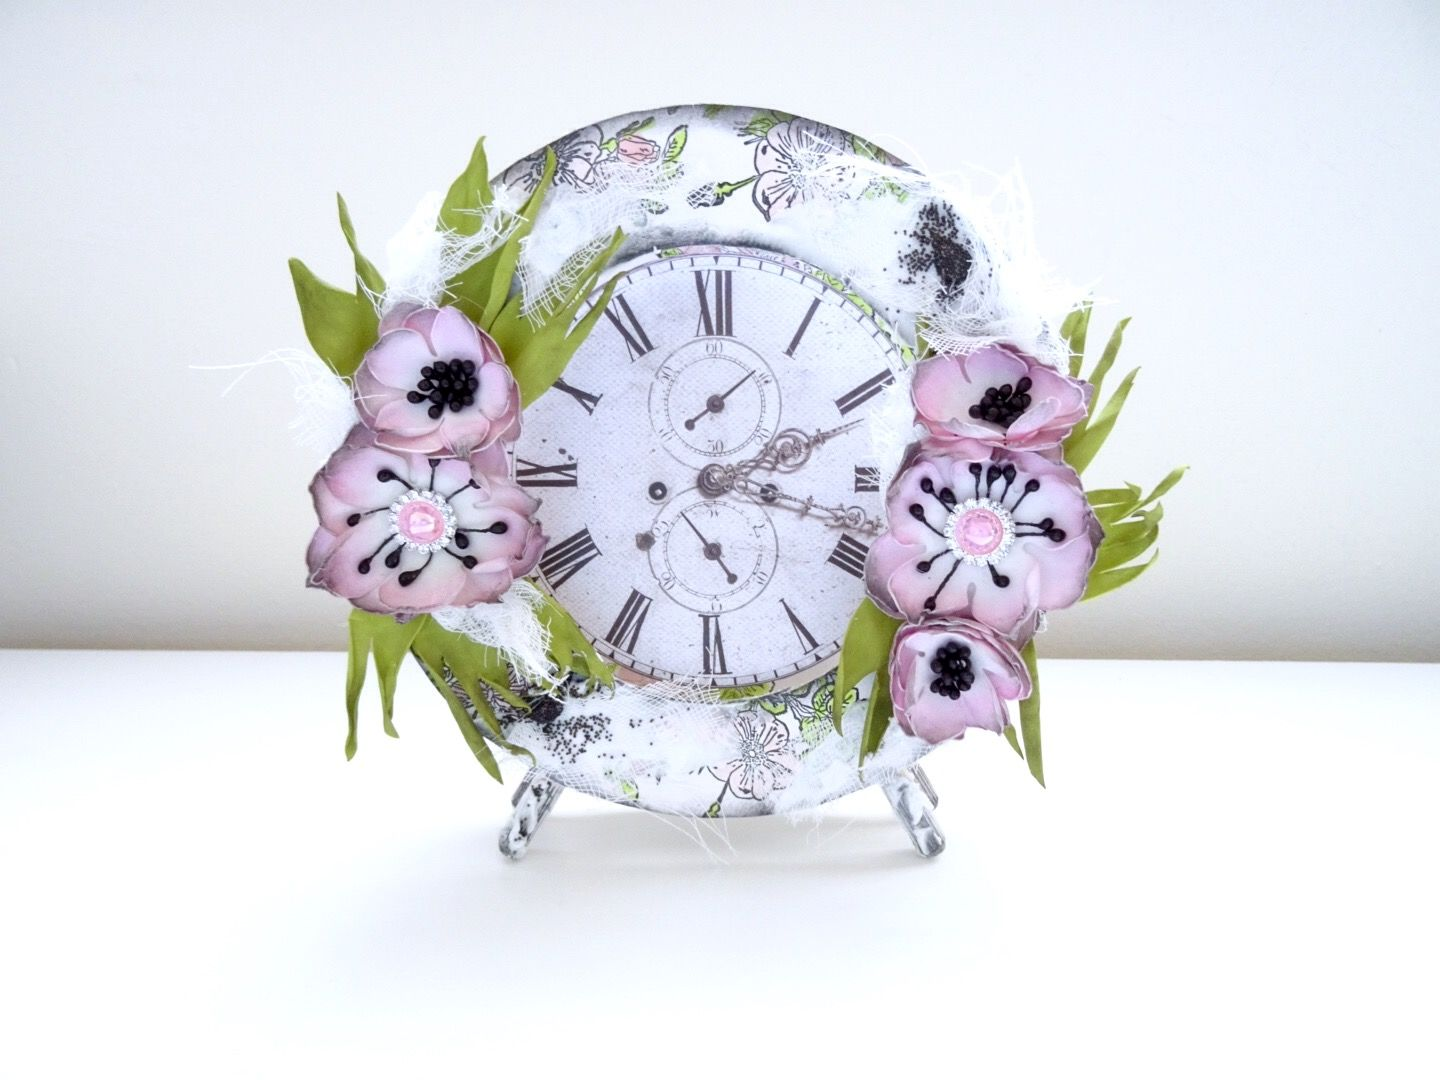 Handmade clock with foamiran flowers